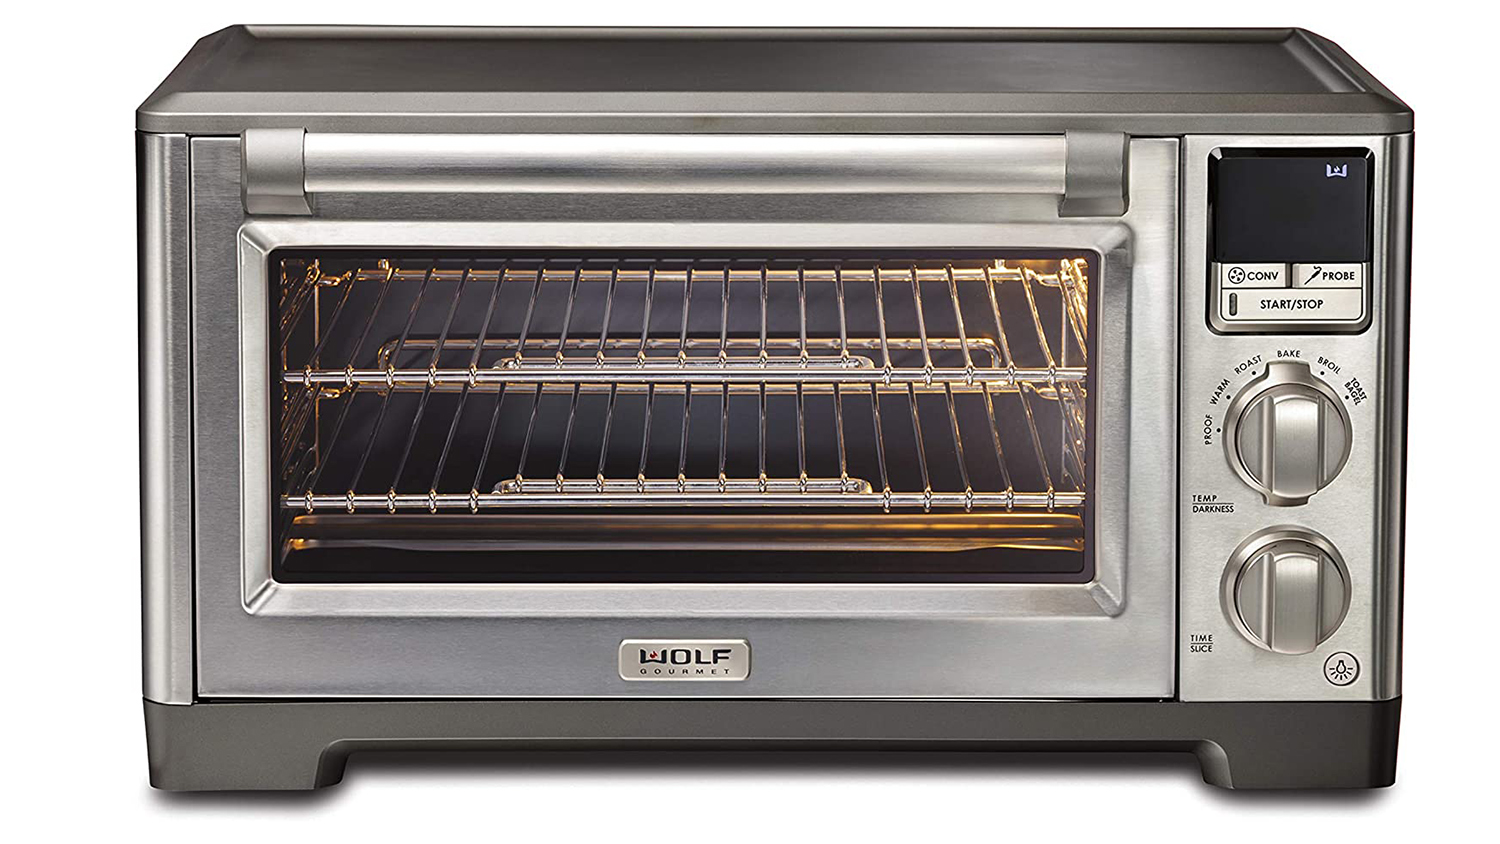 best convection toaster oven